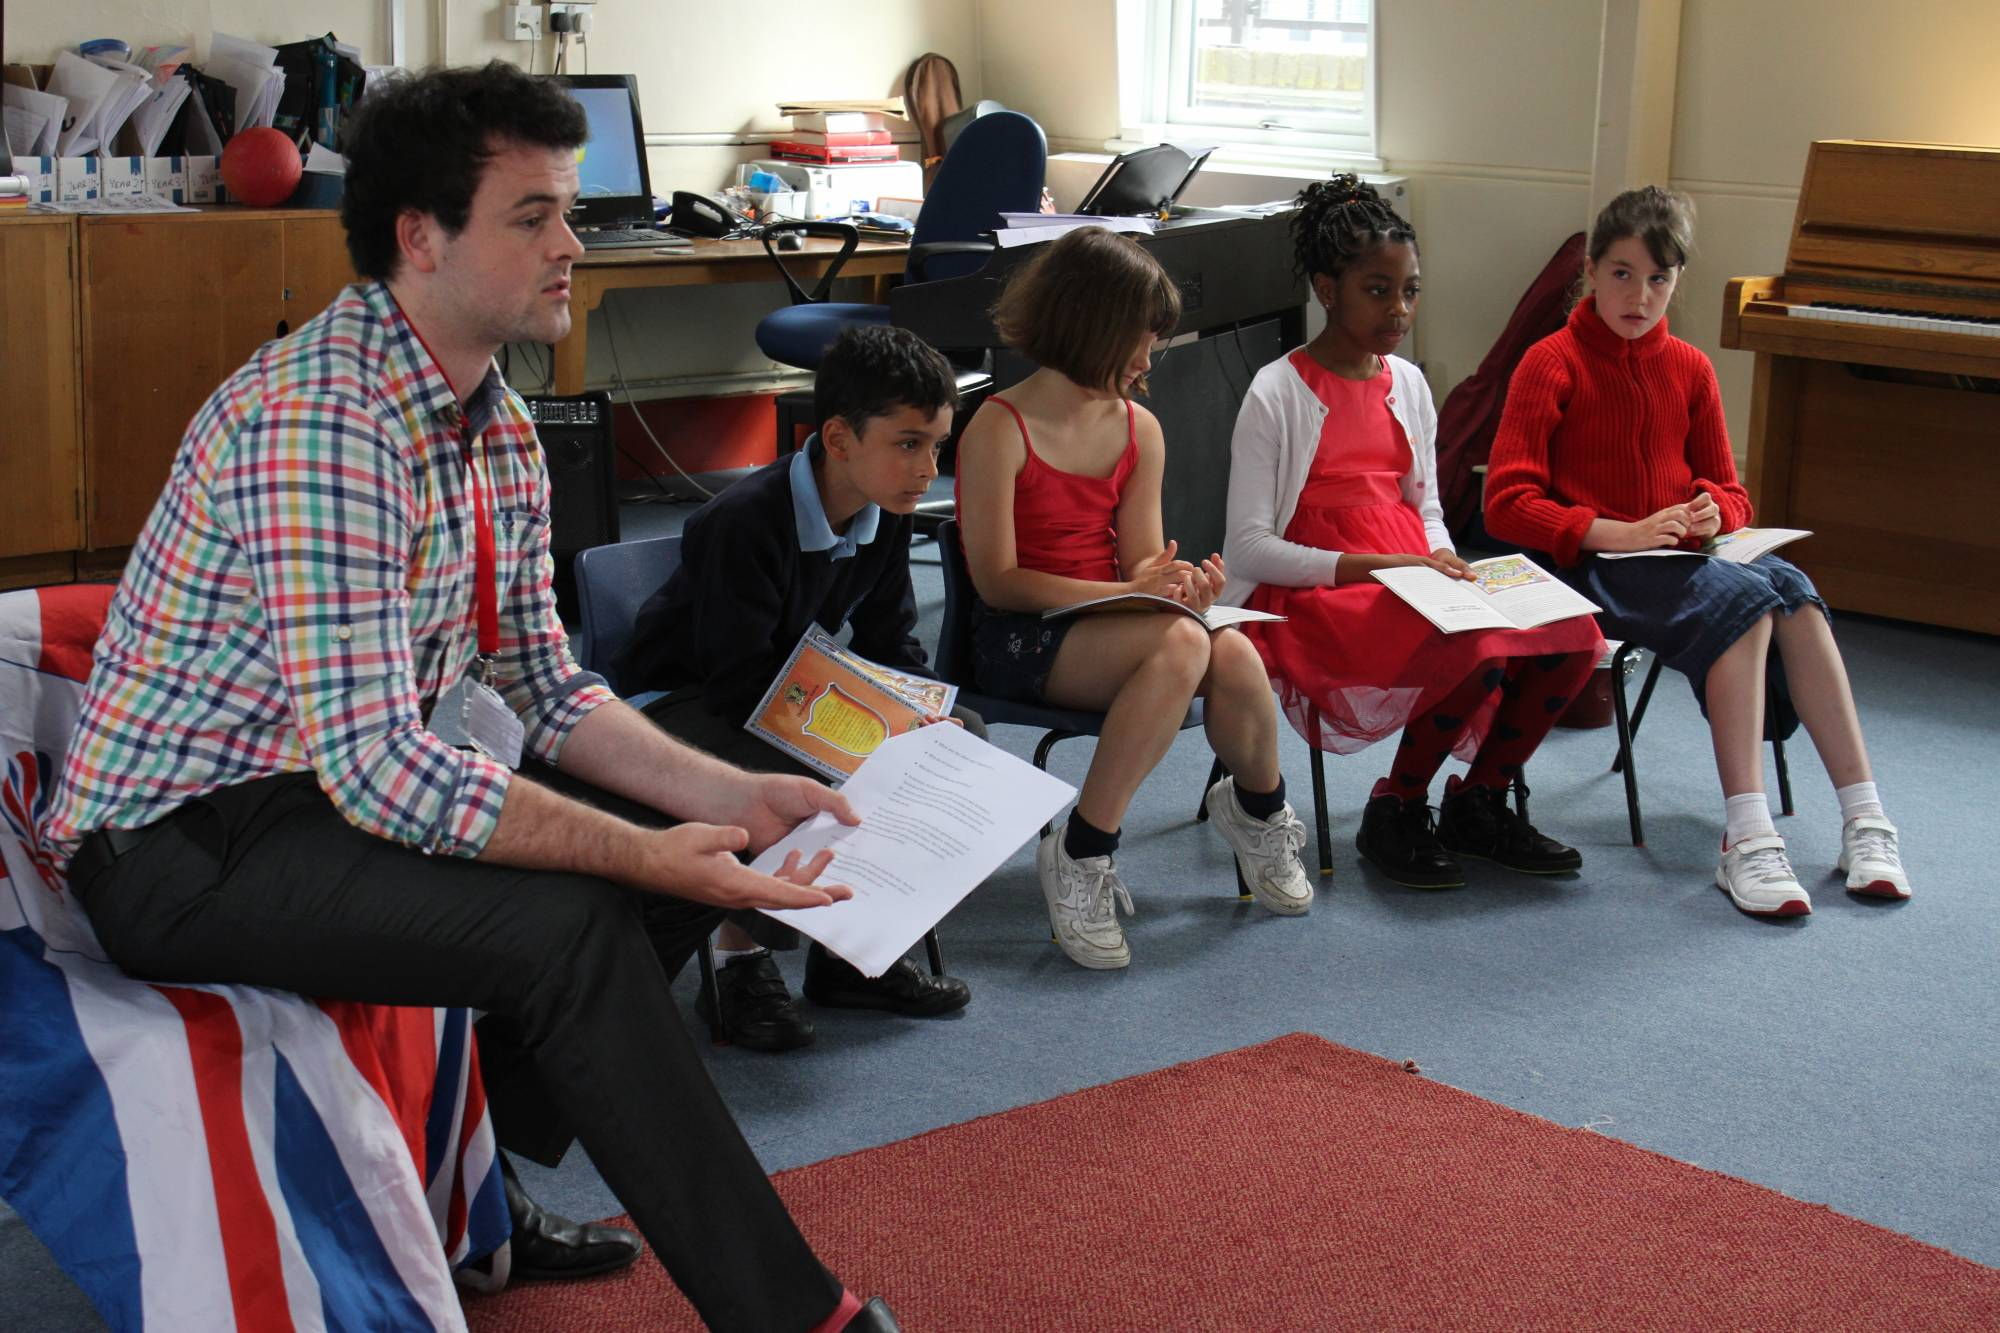 British Values - question and answer session